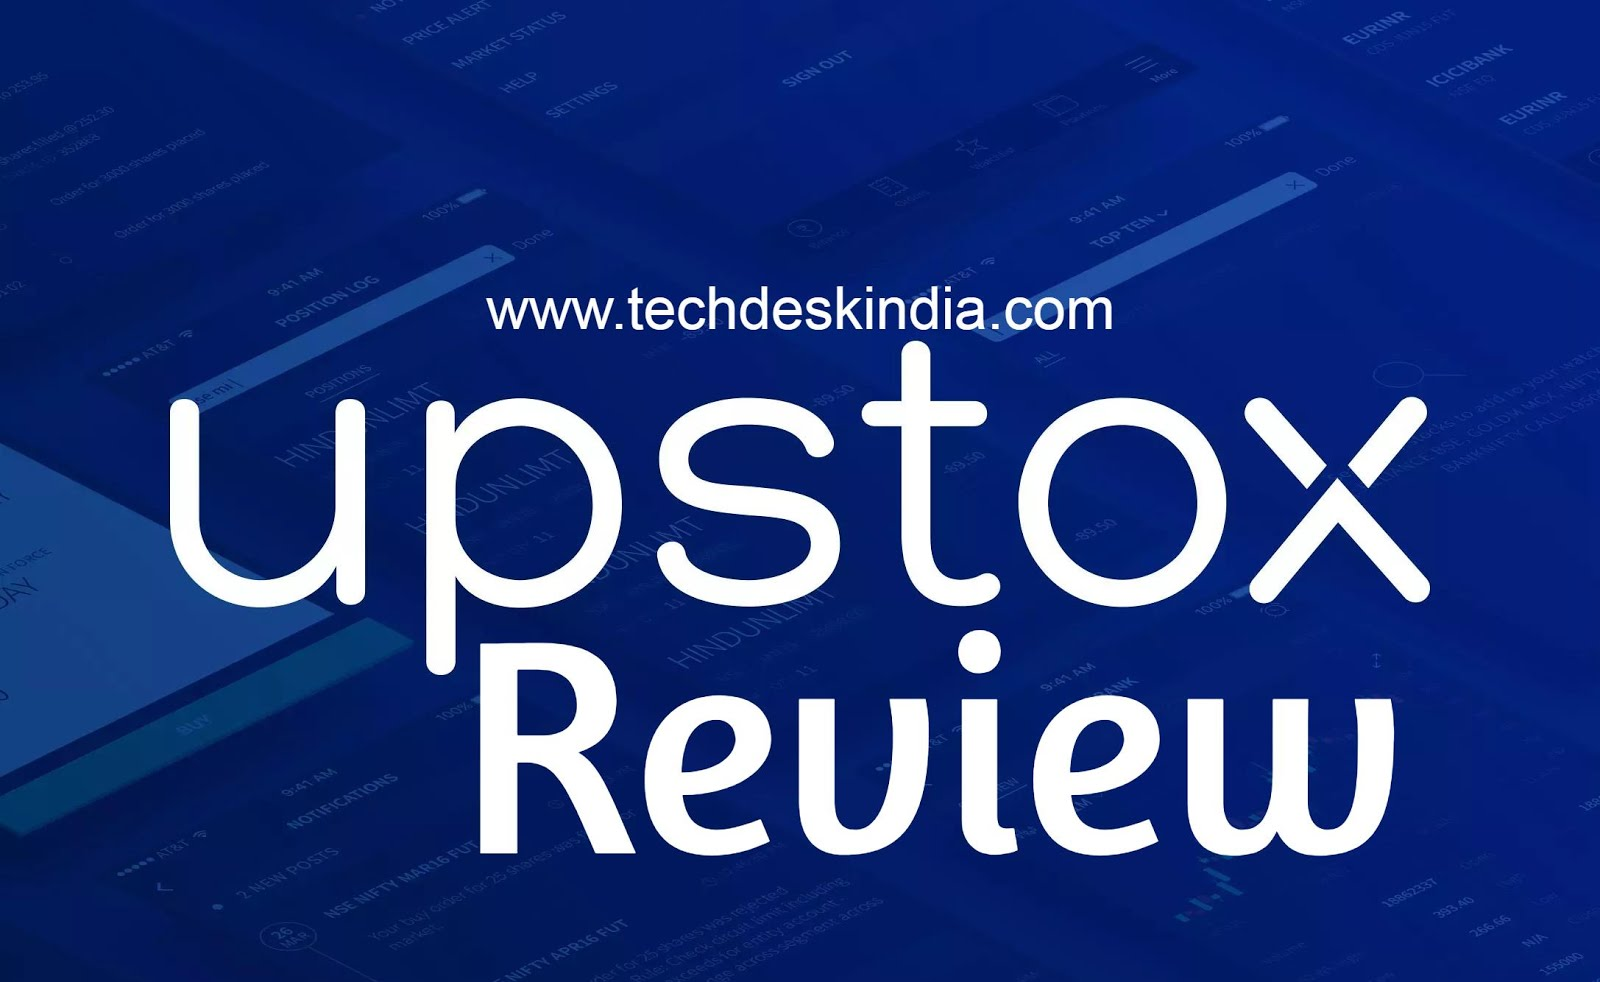 upstox review - How to make money from it? | Discount Broker In India